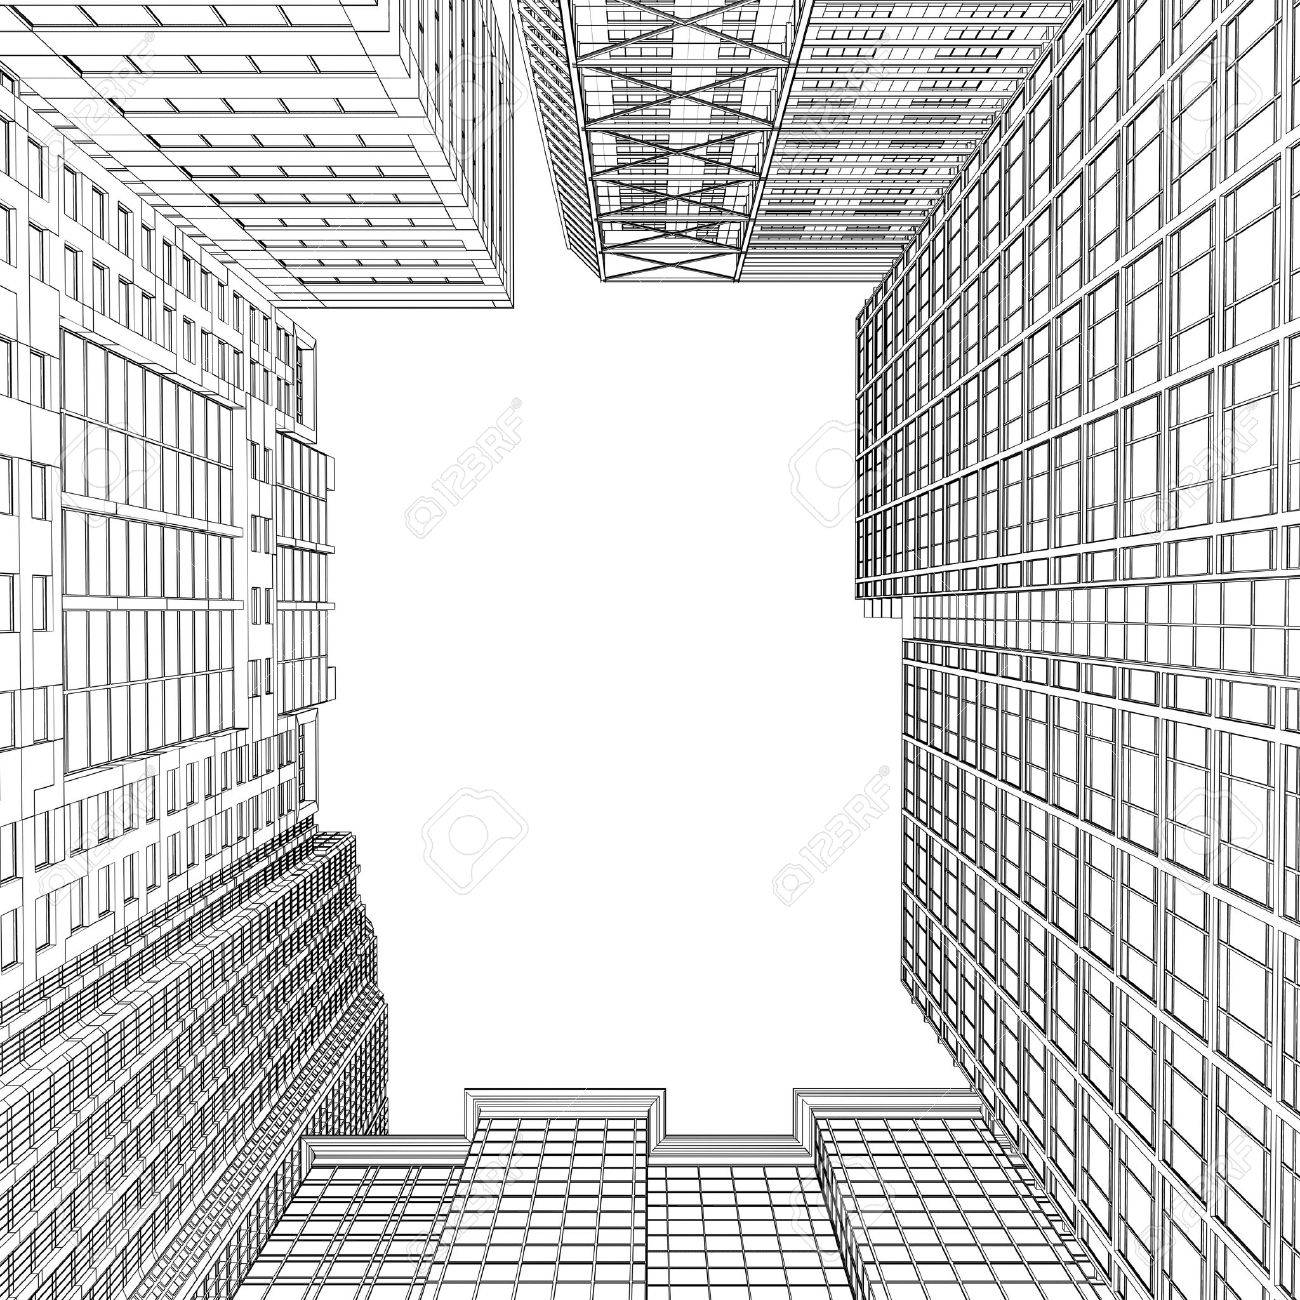 20055362-skyscraper-rendering-in-lines-isolated-render-on-a-white-background